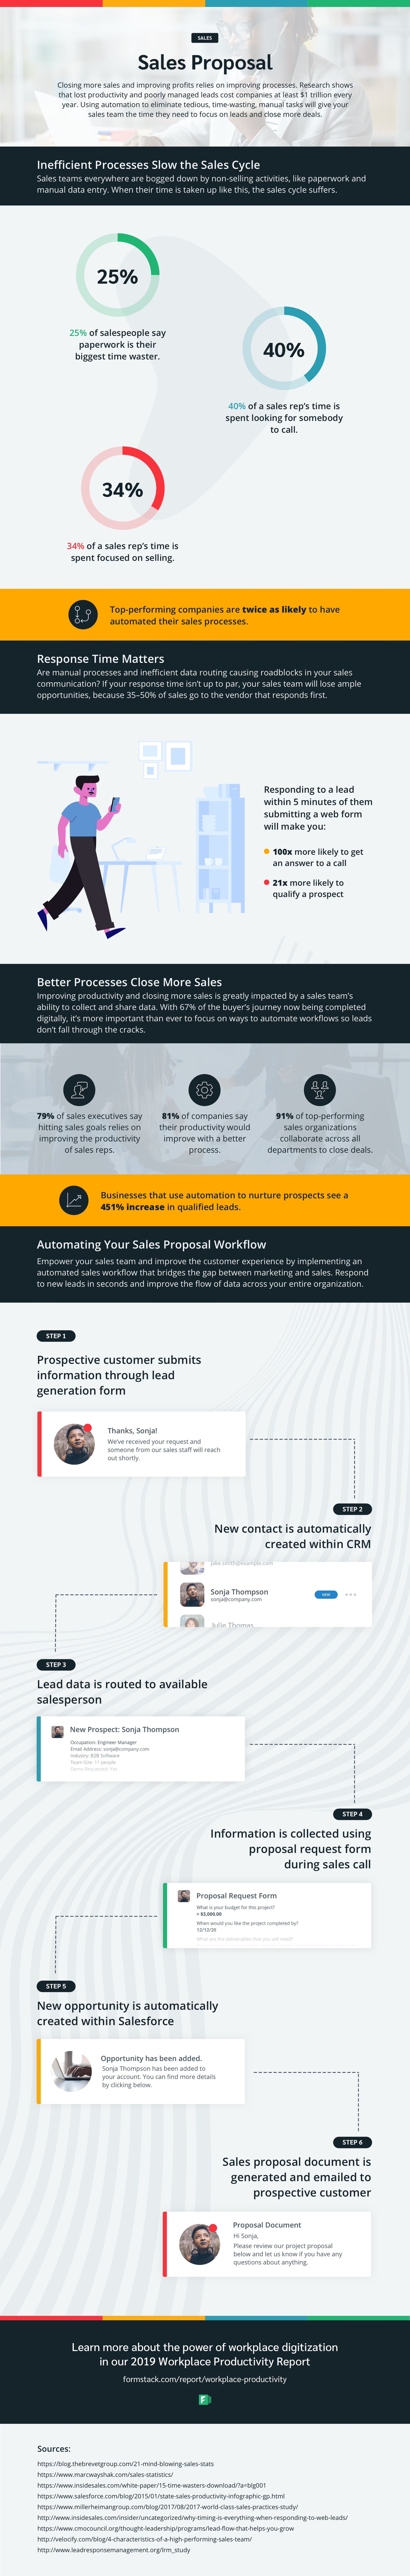 Automating Your Sales Proposal Workflow